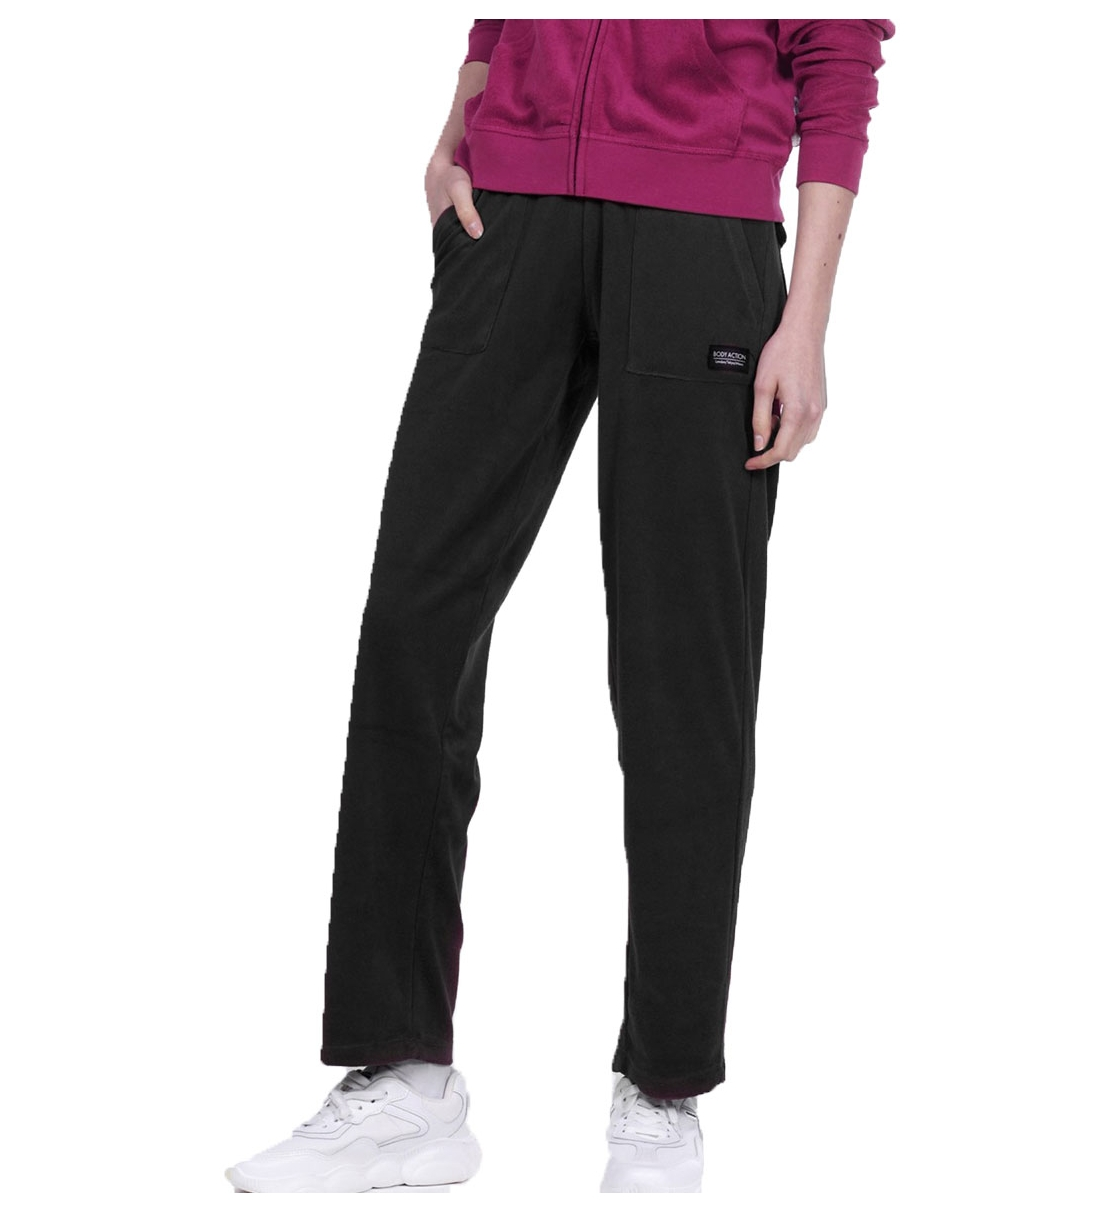 Body Action Ss20 Women Basic Terry Pants